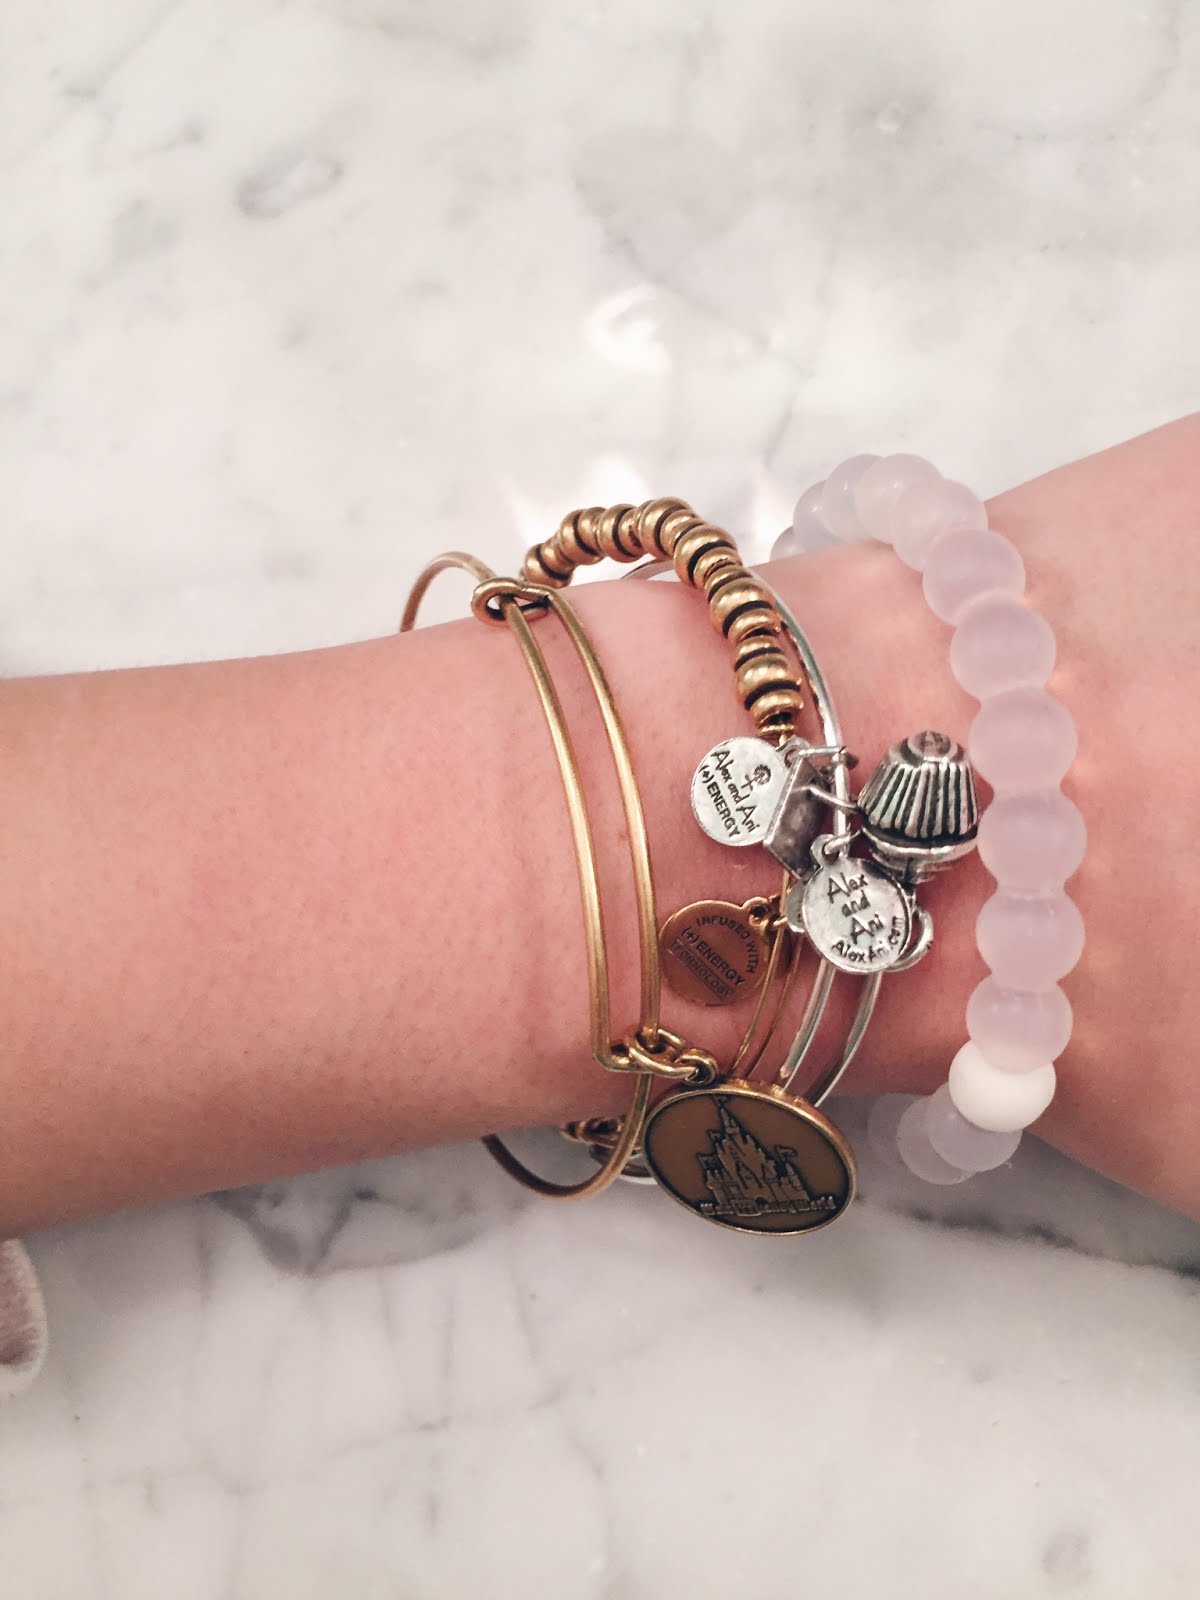 I Love My Alex And Ani Bracelets Like Them Because When You Wear Together They Don T Cling Only Jingle Which Doesn Bother Me